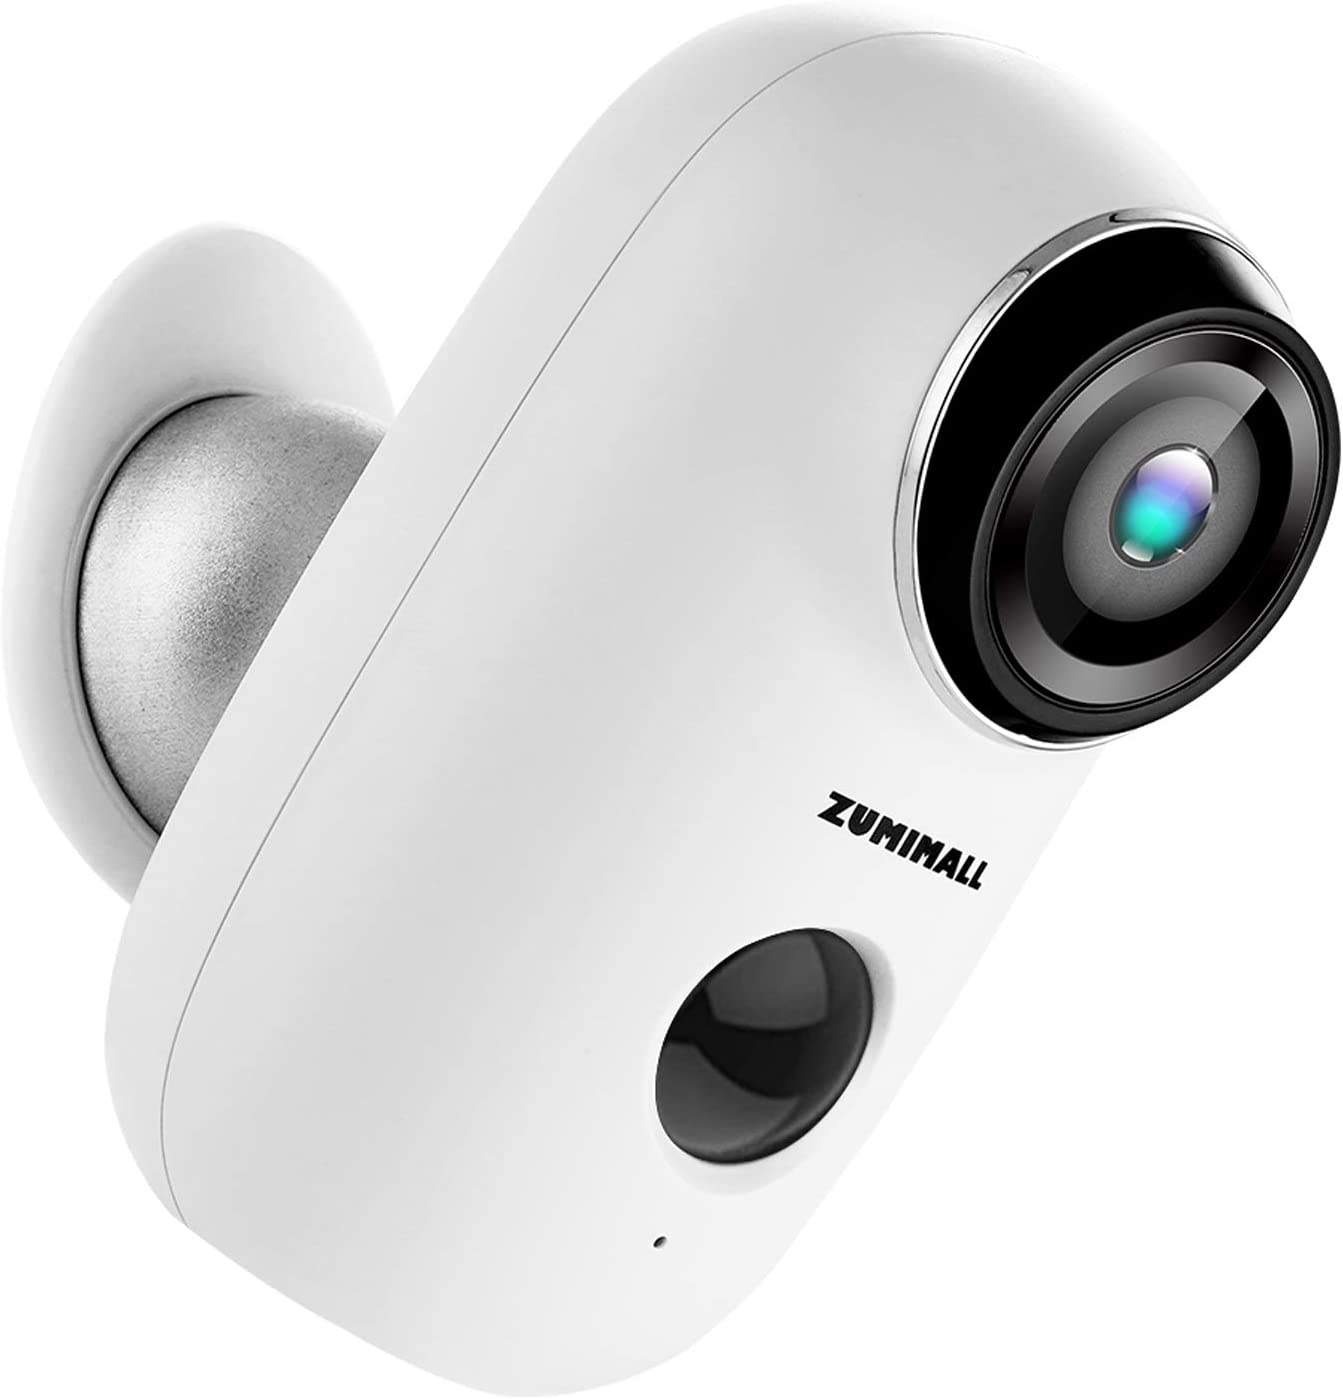 Zumimall Store Home Security Camera